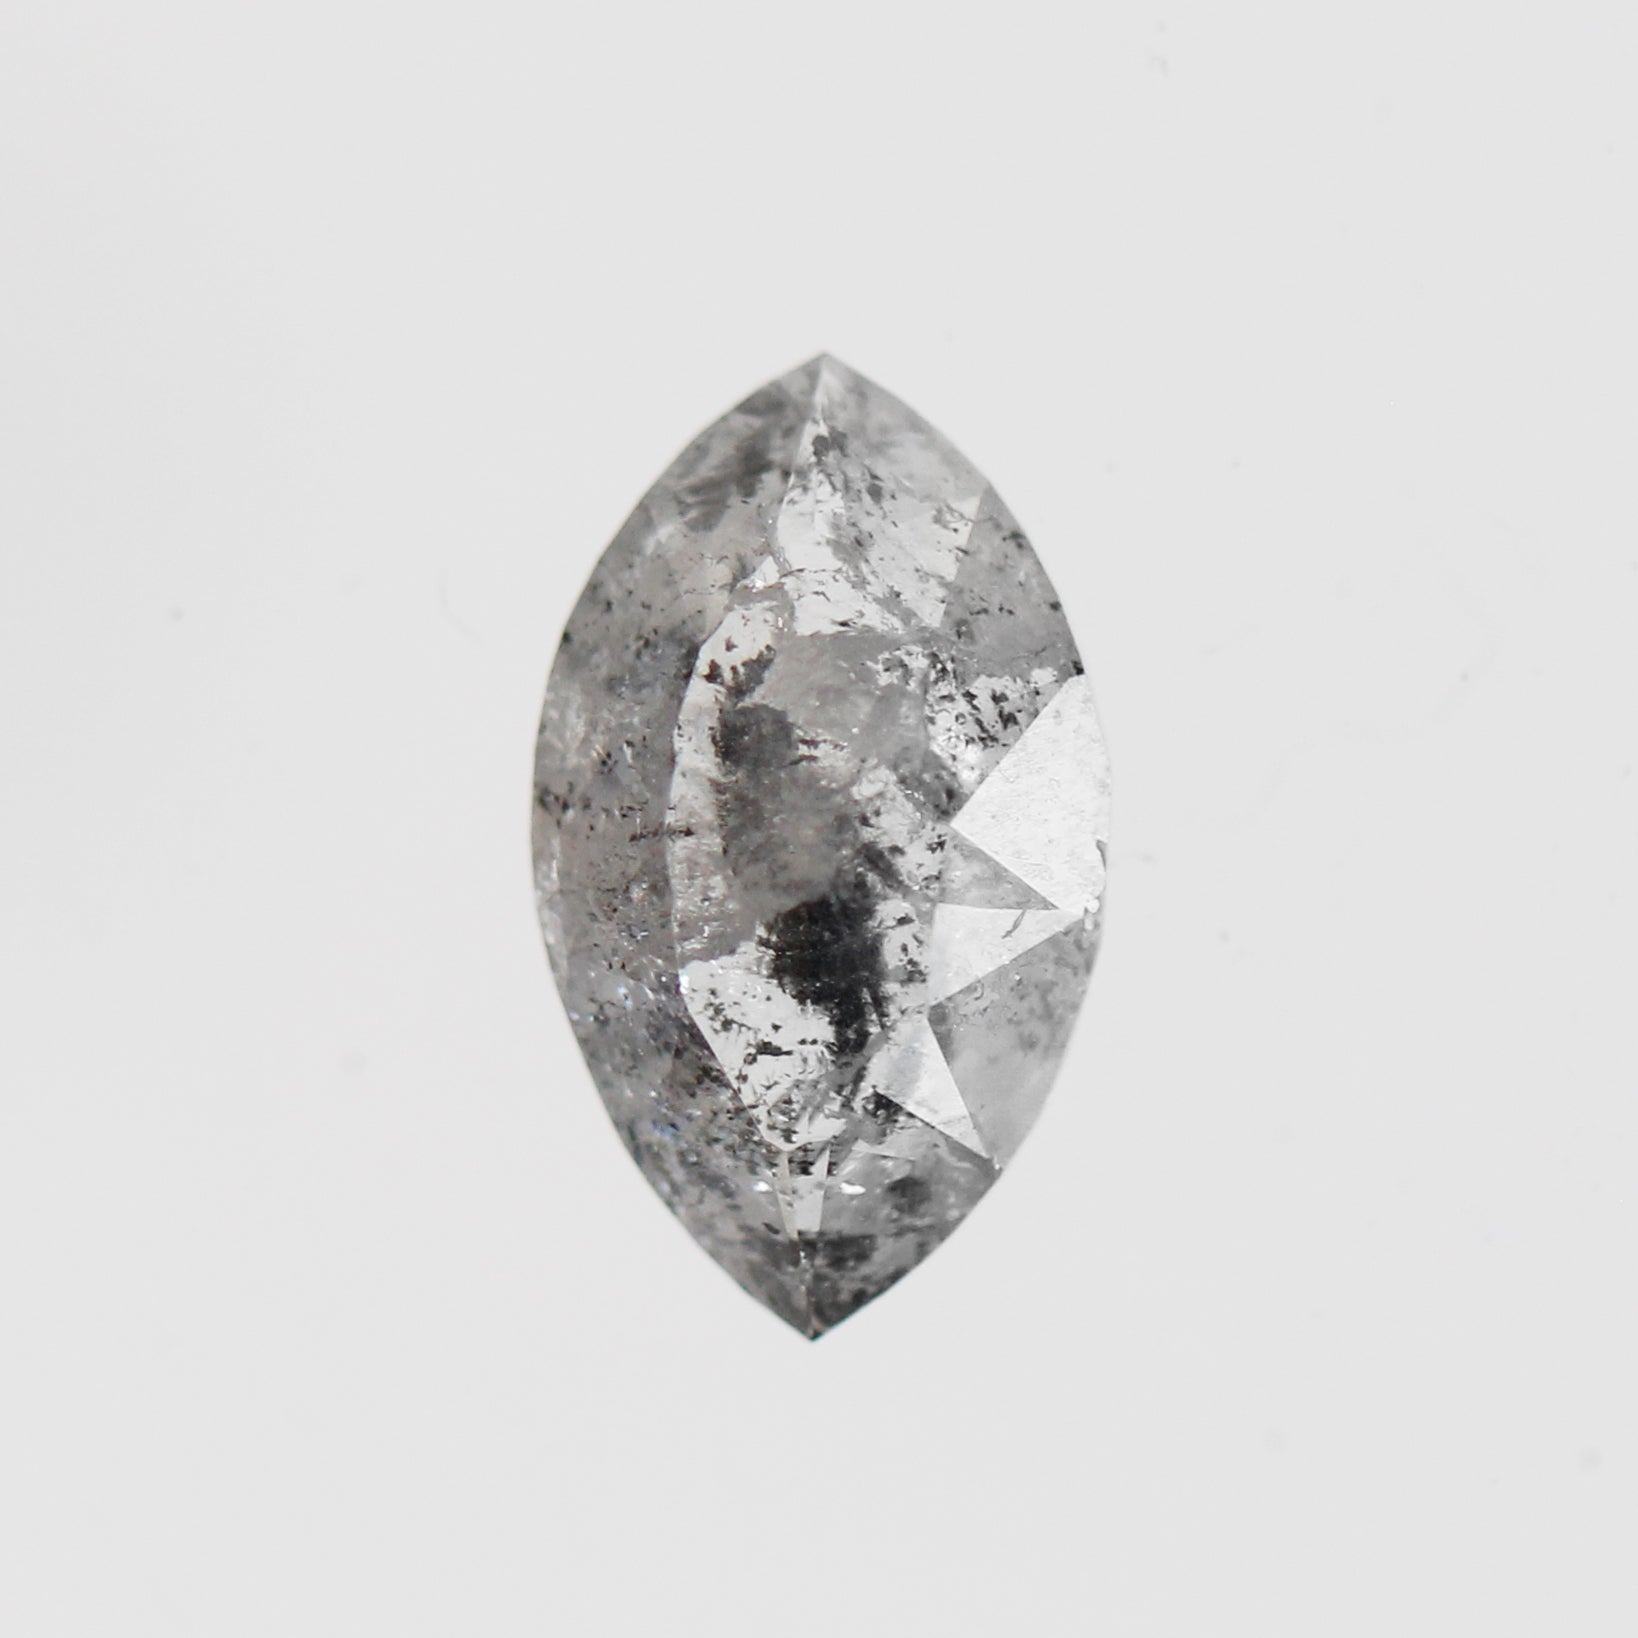 2.14 Carat Marquise Celestial Diamond - Inventory Code MRG214 - CC - Celestial Diamonds ® by Midwinter Co.